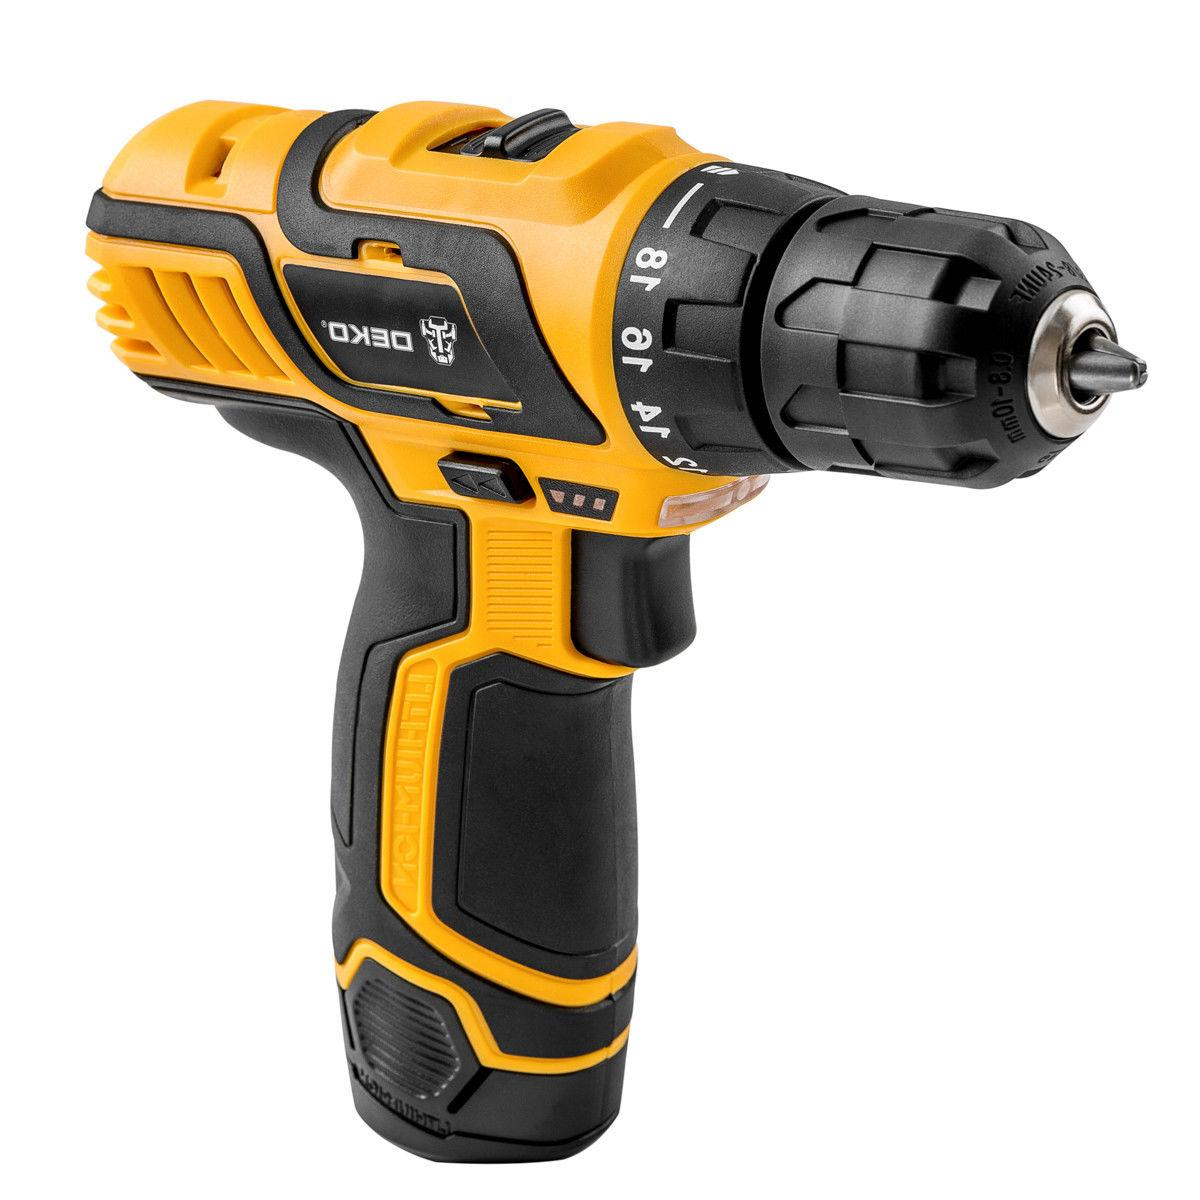 "DEKO 3/8"" 12V Lithium-Ion Battery Cordless 2-Speed Drill Ele"